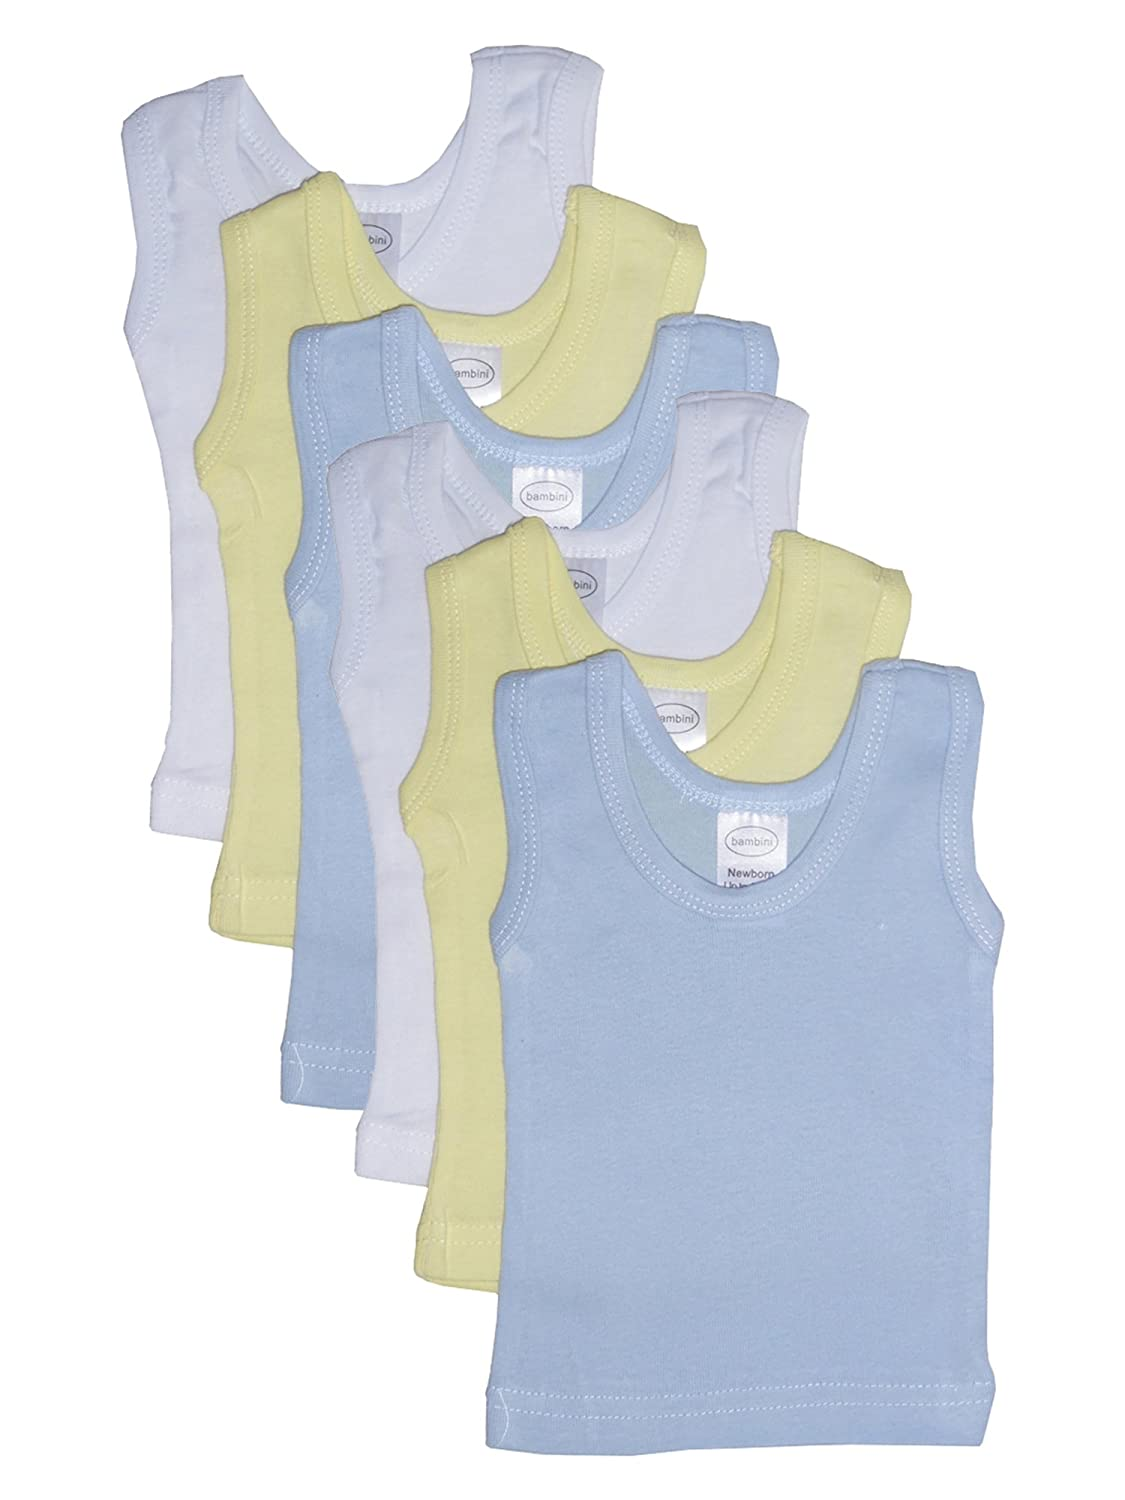 bambini Baby Boy's White, Blue, Yellow Rib Knit Pastel Sleeveless Tank Top Shirt bambini Baby Boy's White BAM035